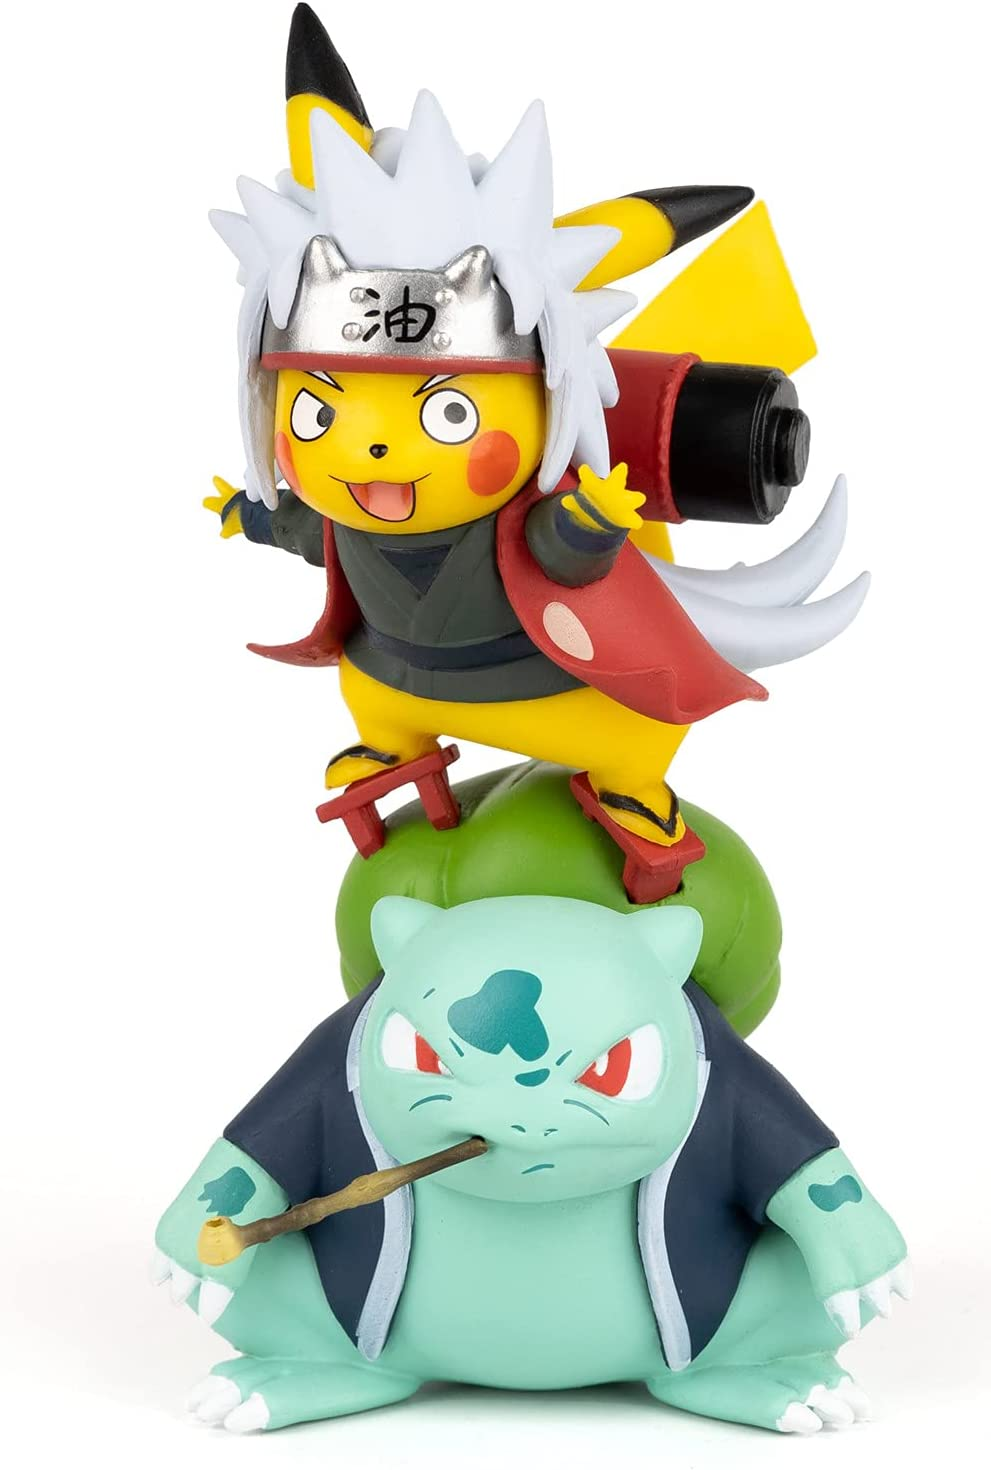 DOMAN Pikachu Cosplay Jiraiya Action GK Limited price Statues Collectio Branded goods Figure